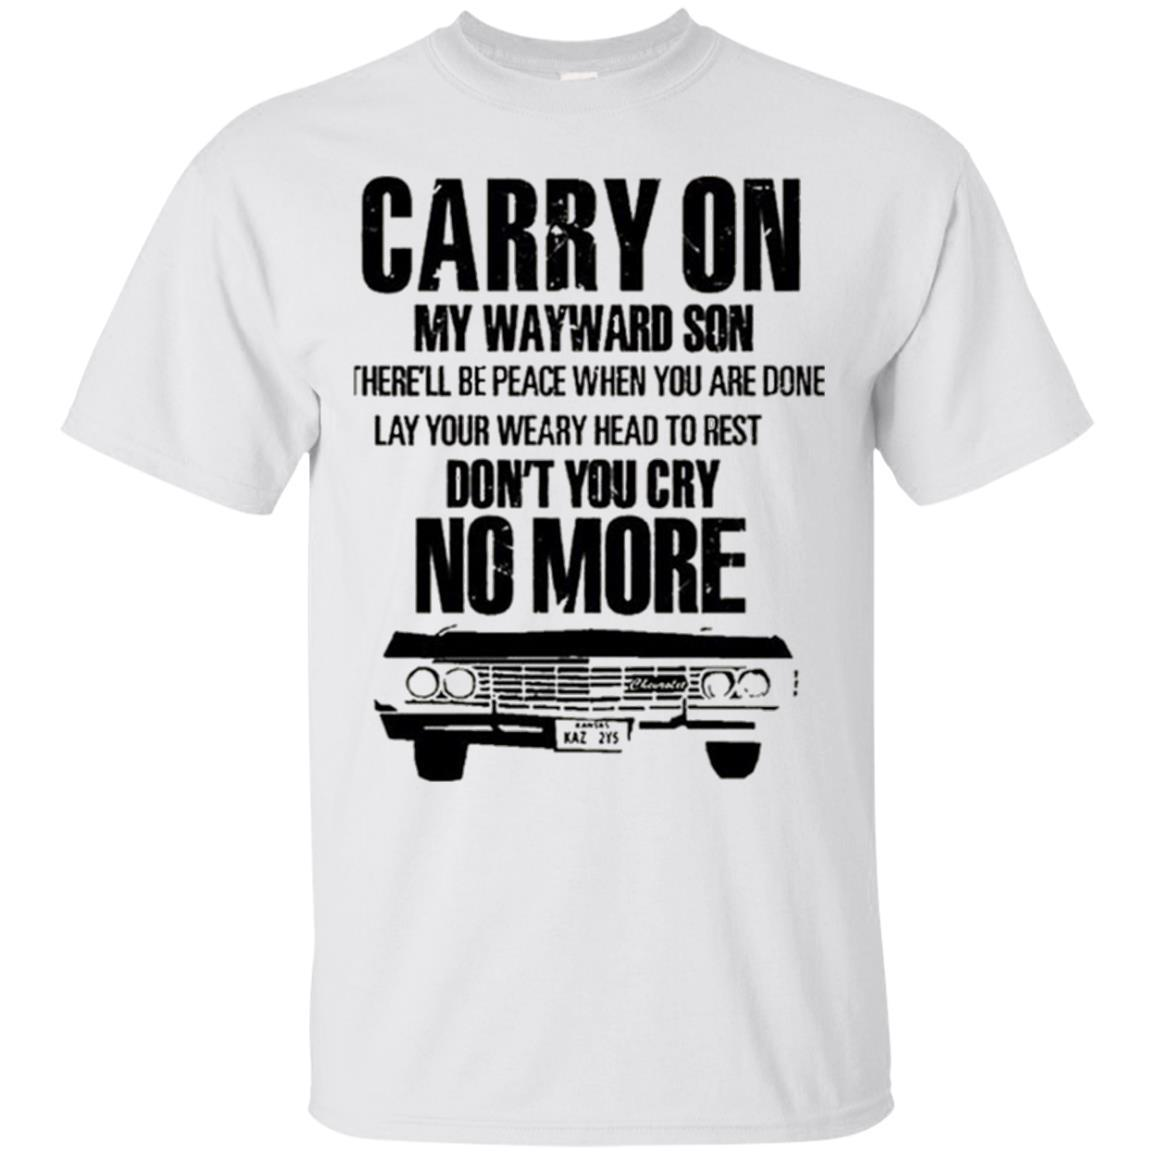 Carry On My Wayward Son Shirt – Carry One Supernatural T-Shirt